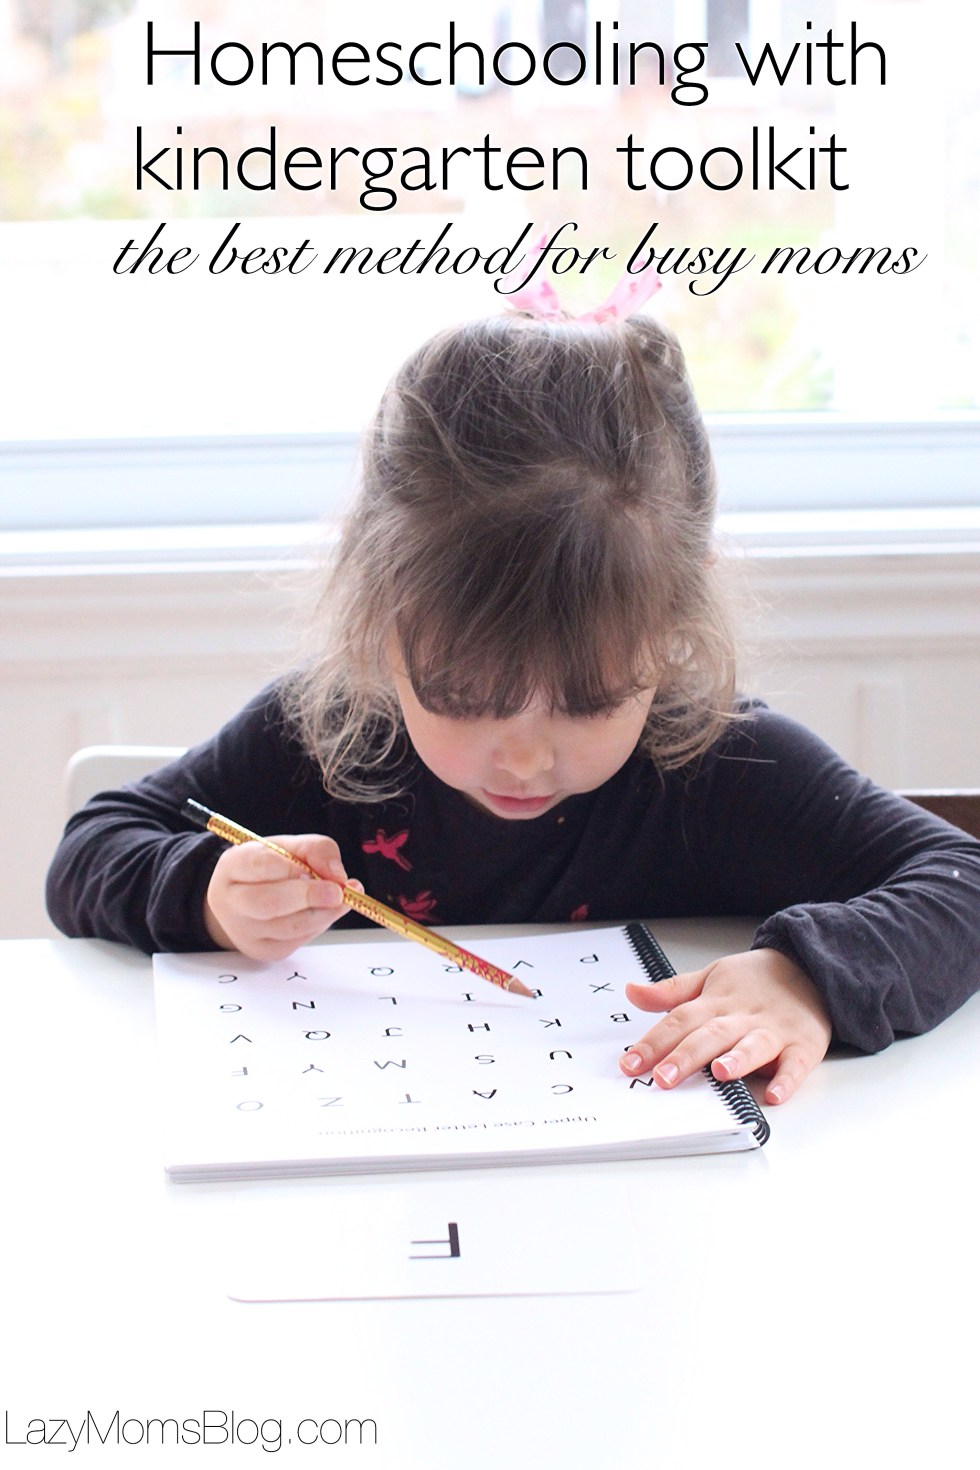 This is the best method for homeschooling!